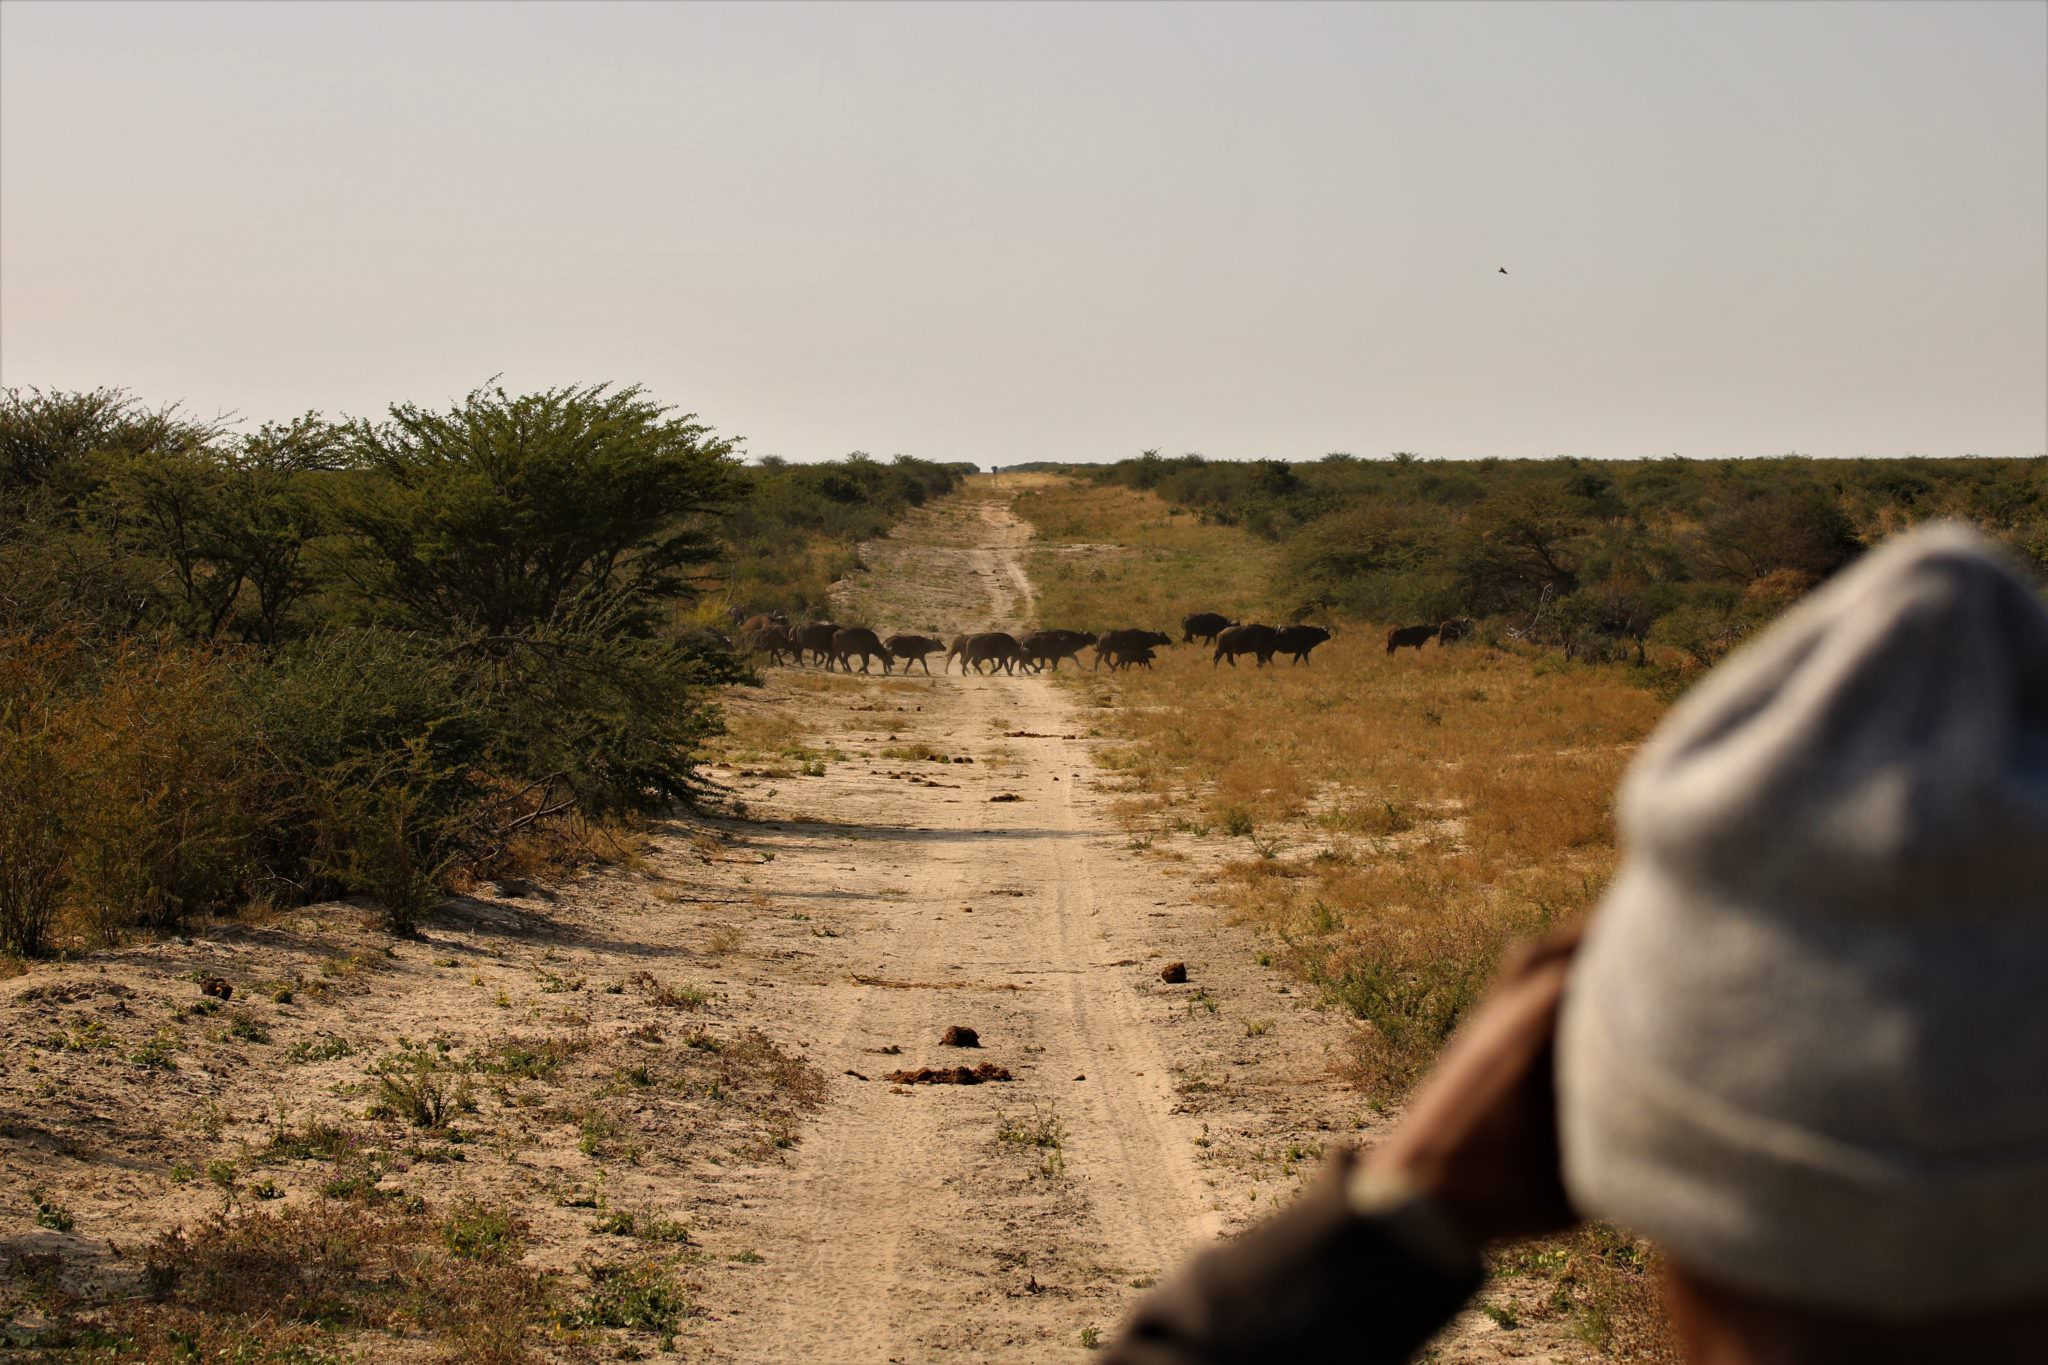 A man observing a herd of distant African buffalo as part of a spoor survey in Africa